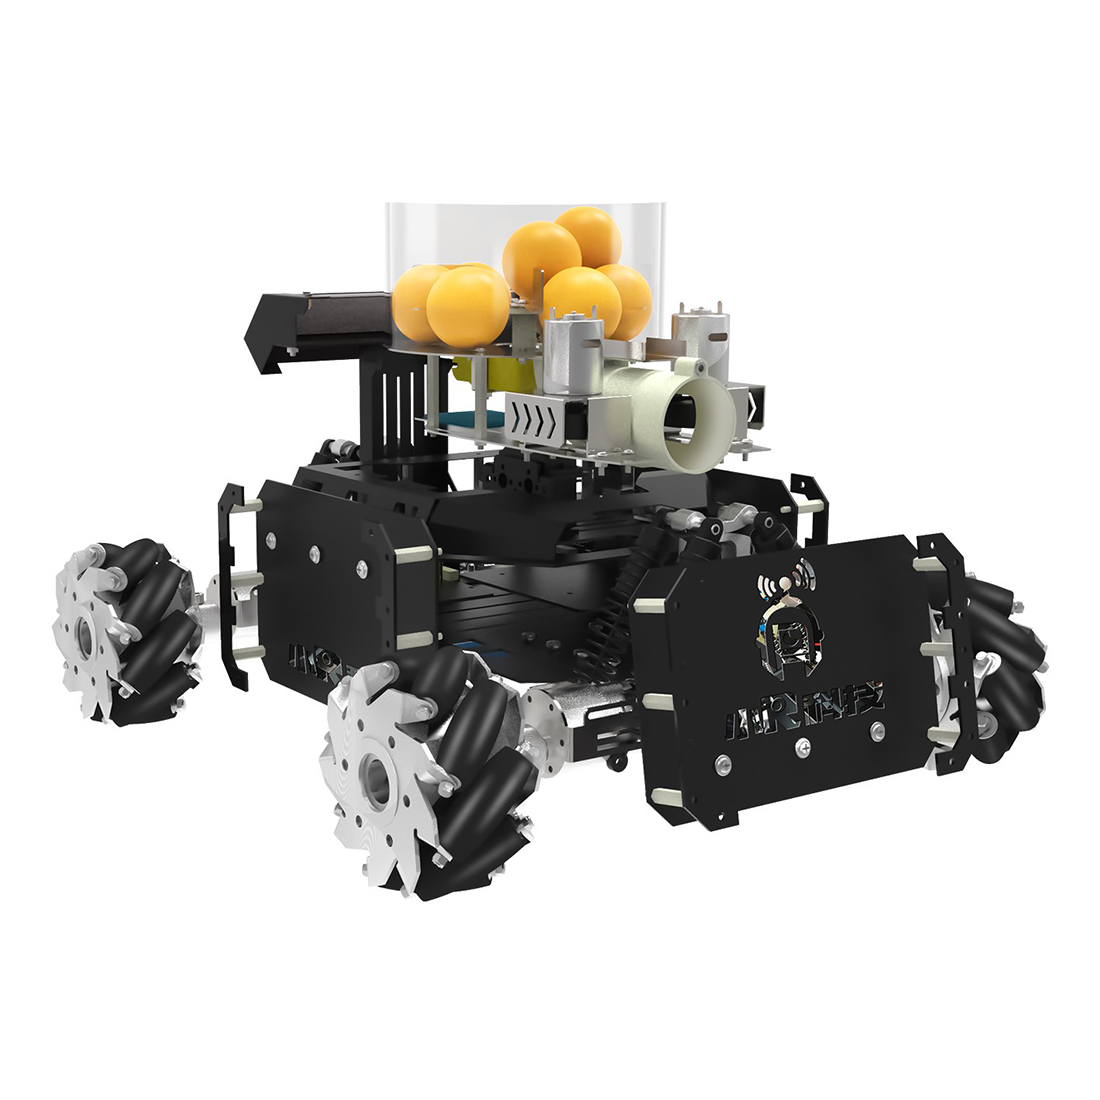 DIY Steam Omni Wheel Turret Chariot VR Video Wifi Control XR Master Intelligent Programmable Battle Robot For STM32 - Black